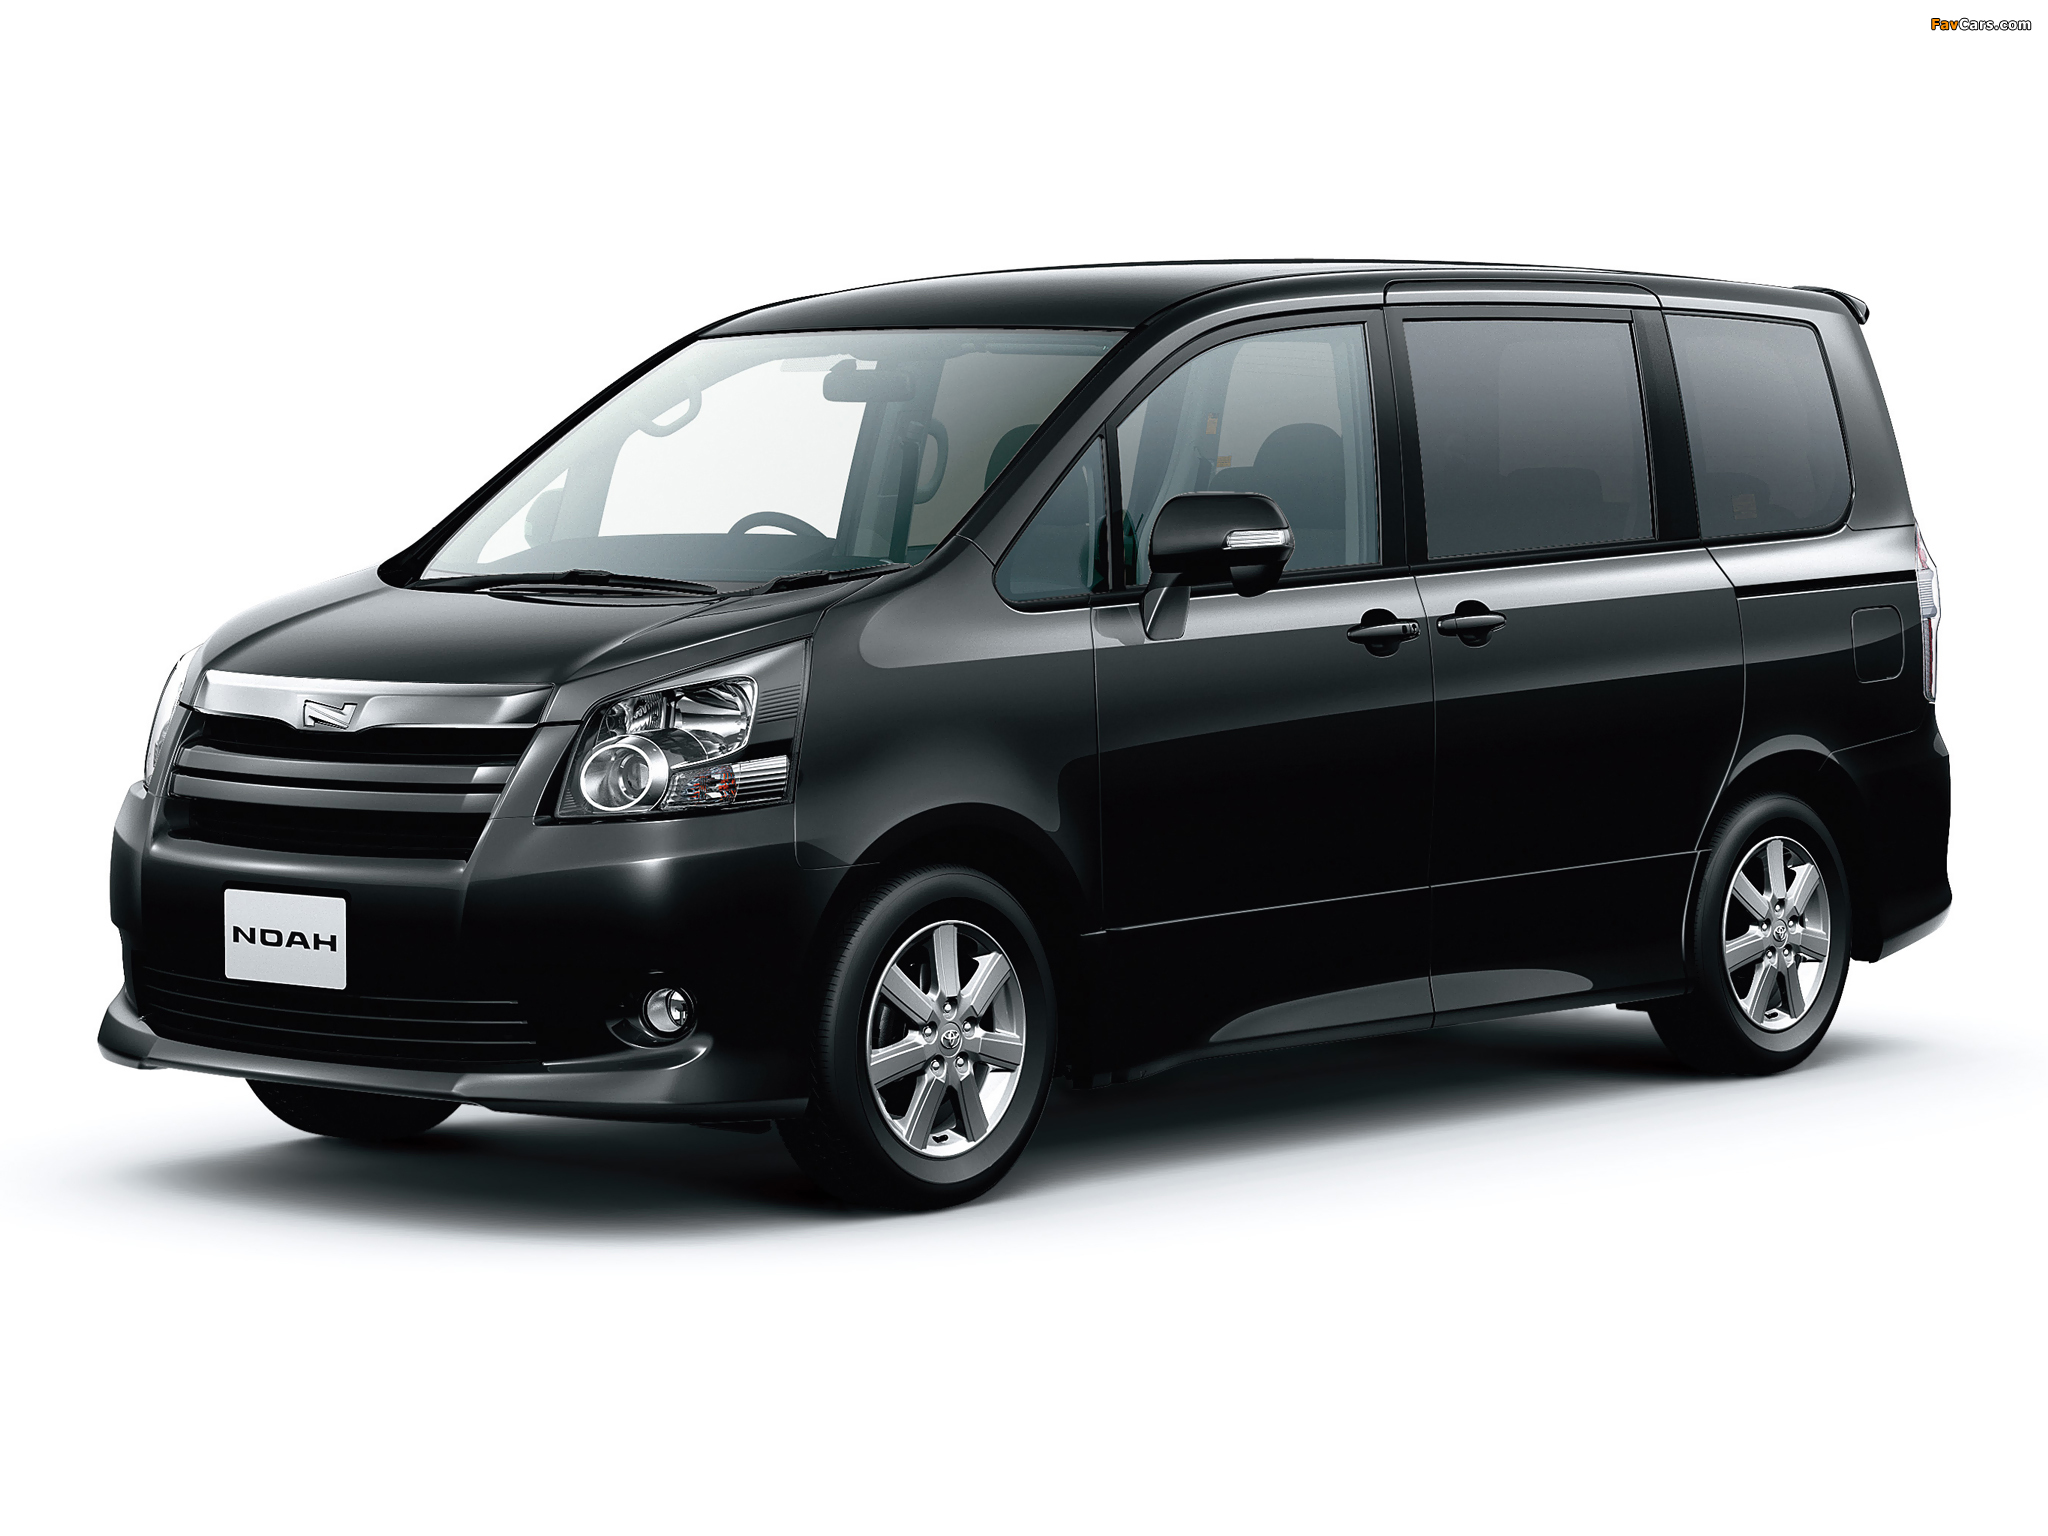 Toyota Noah Si 2007 photos (2048 x 1536)